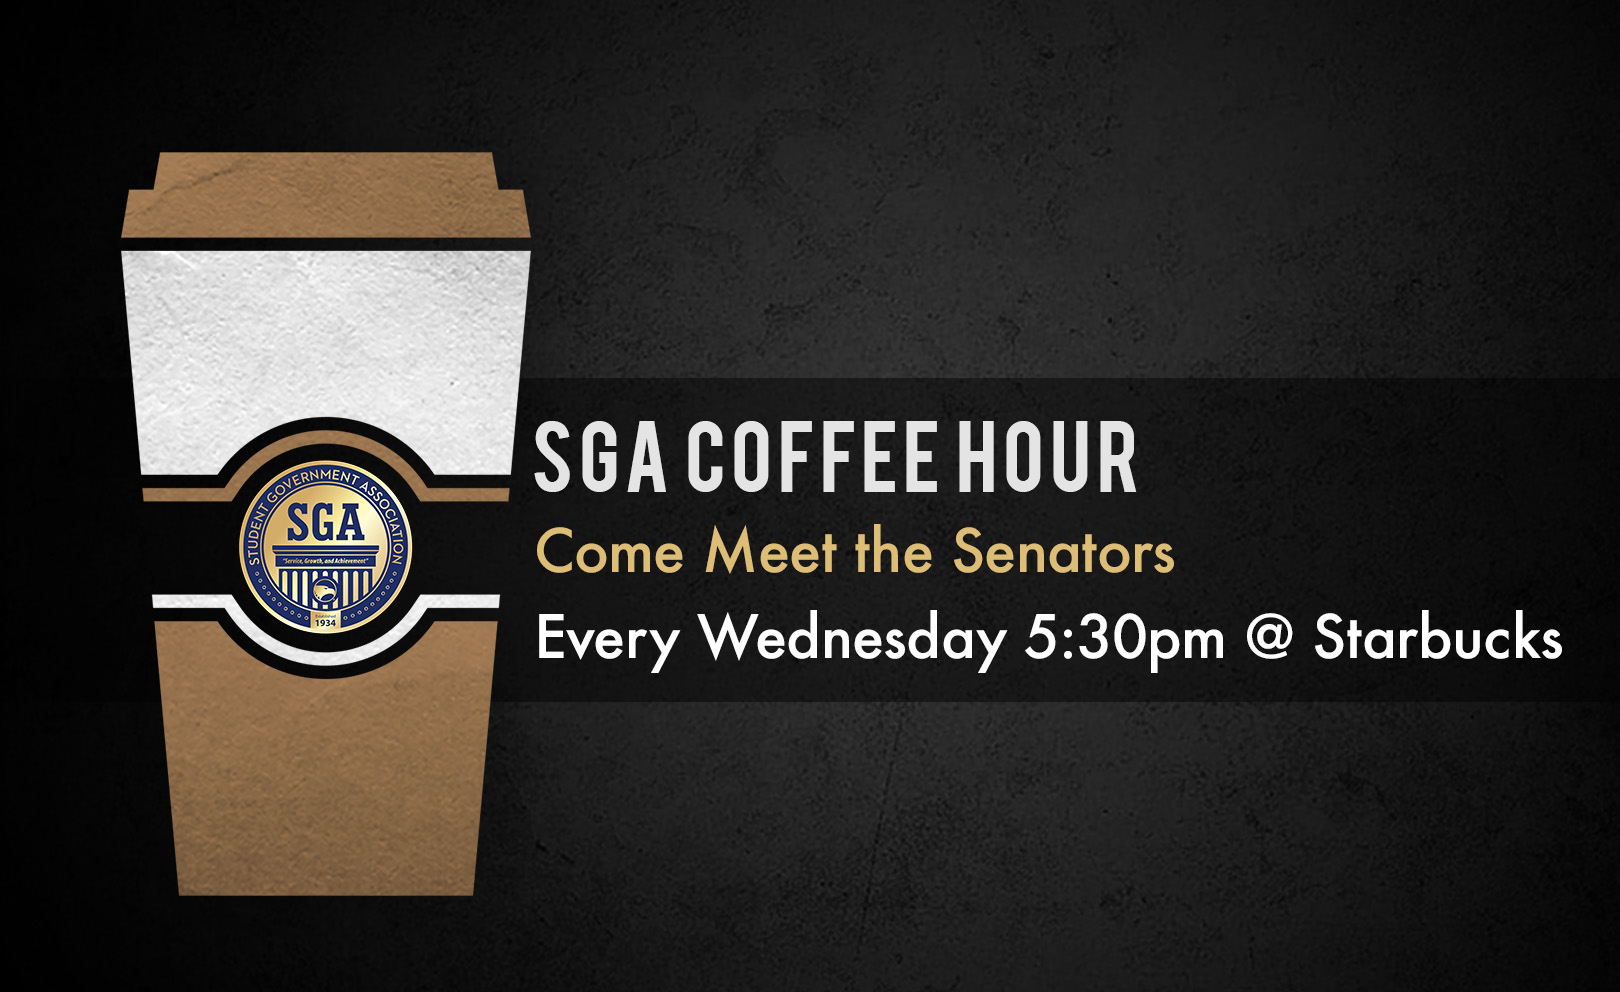 sga_coffee-hoursocial-media